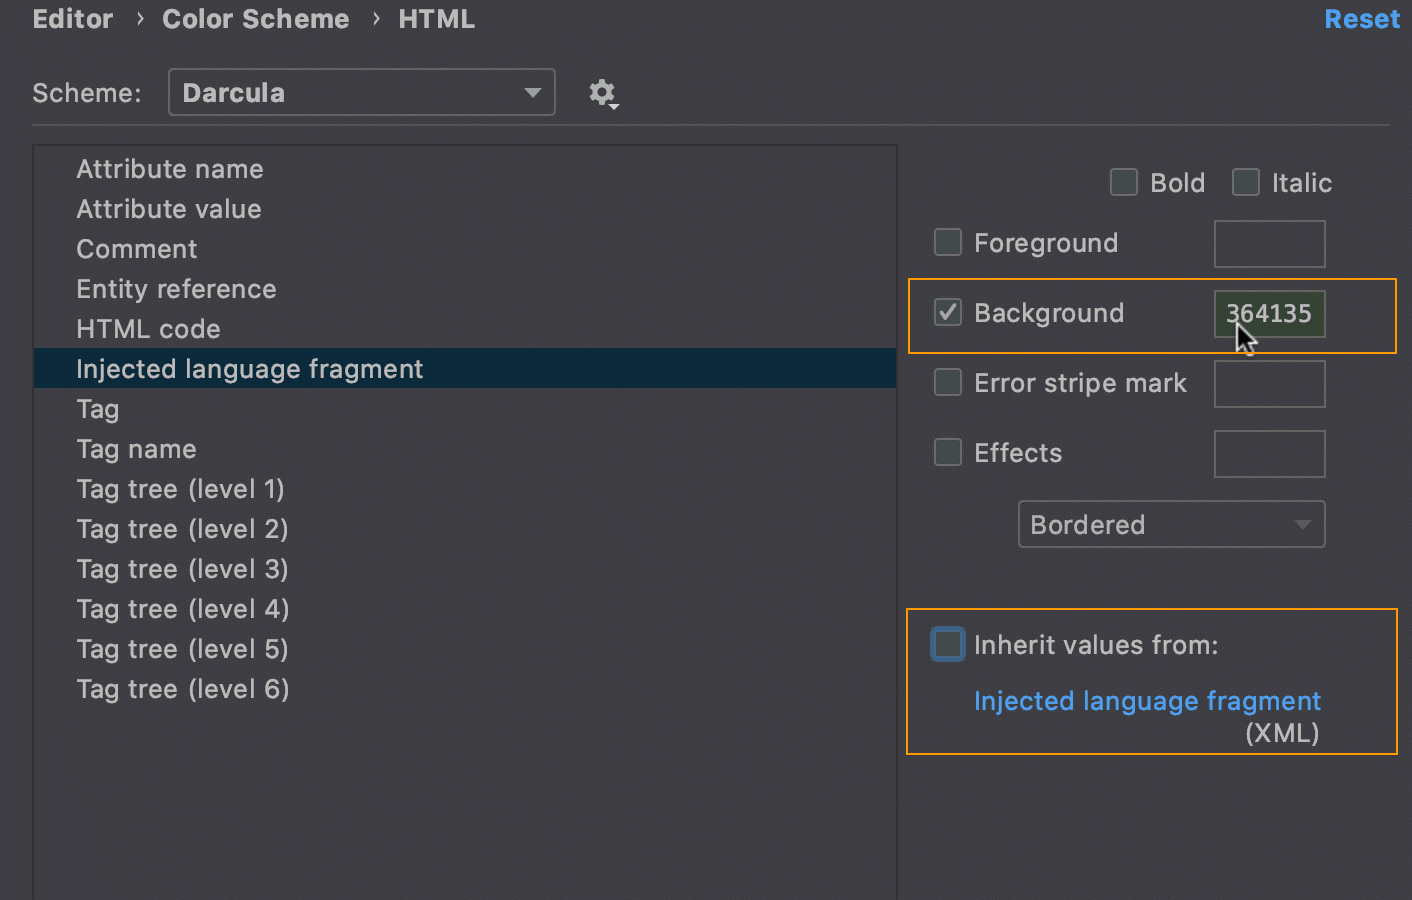 Configuring custom background for language injections